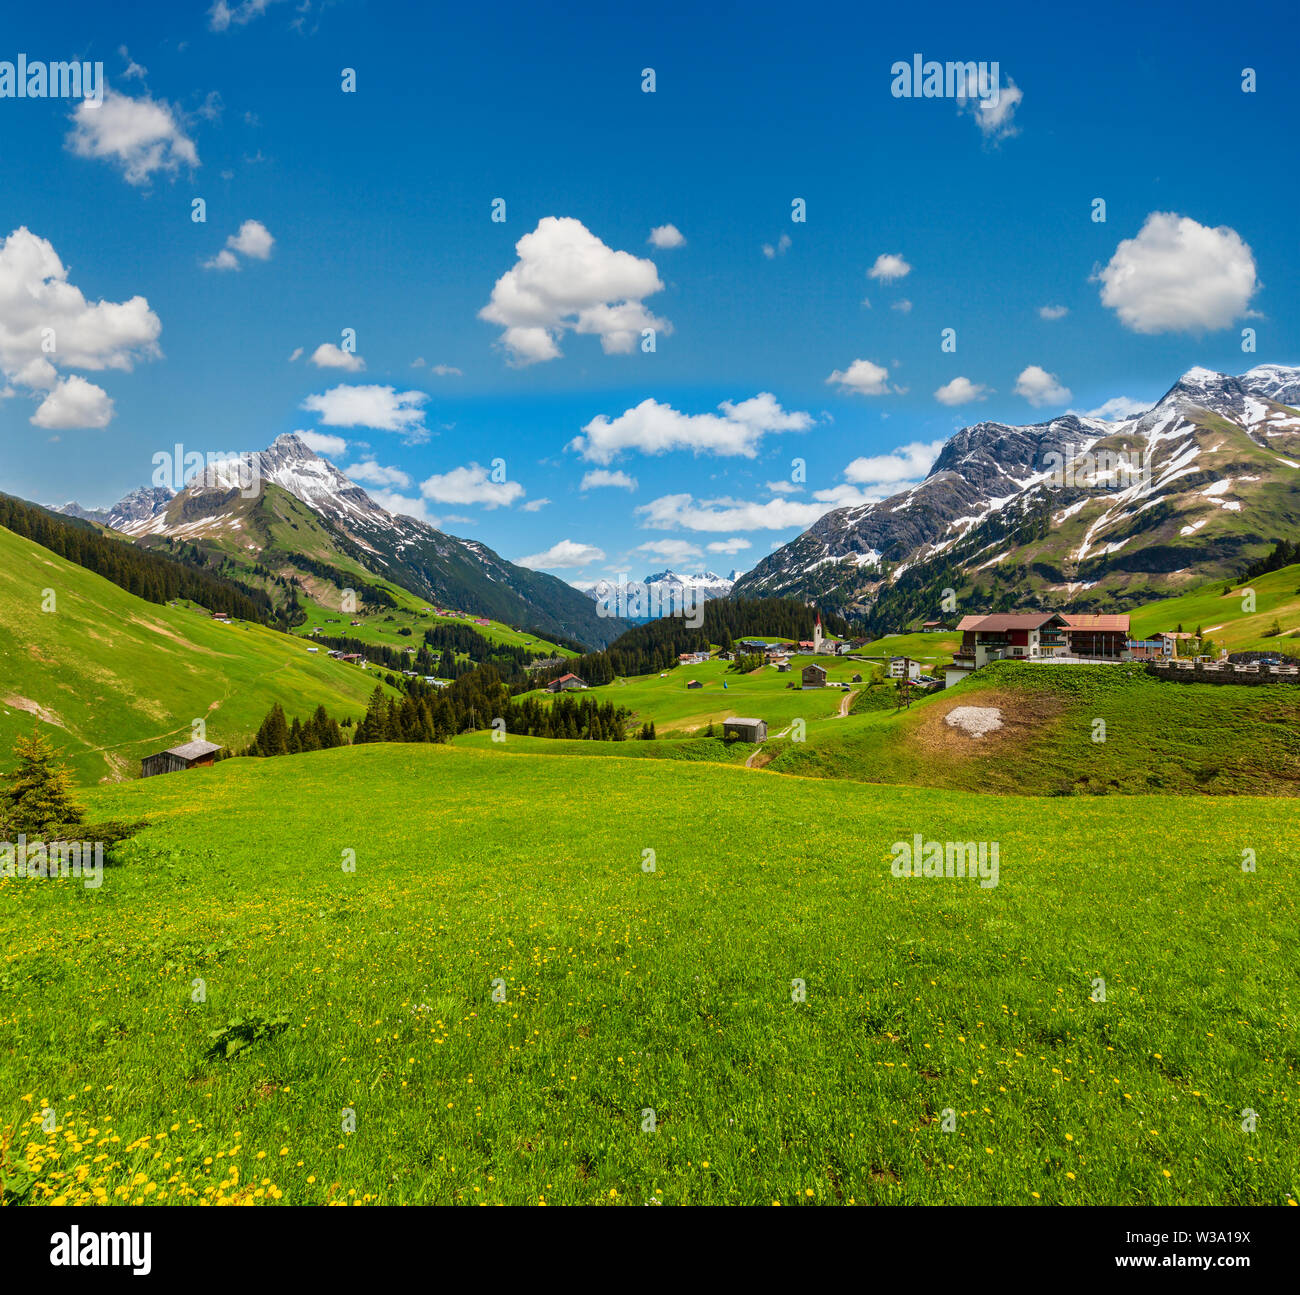 Summer Alps mountain view to Biberkopf mount, Warth, Vorarlberg, Austria - Stock Image